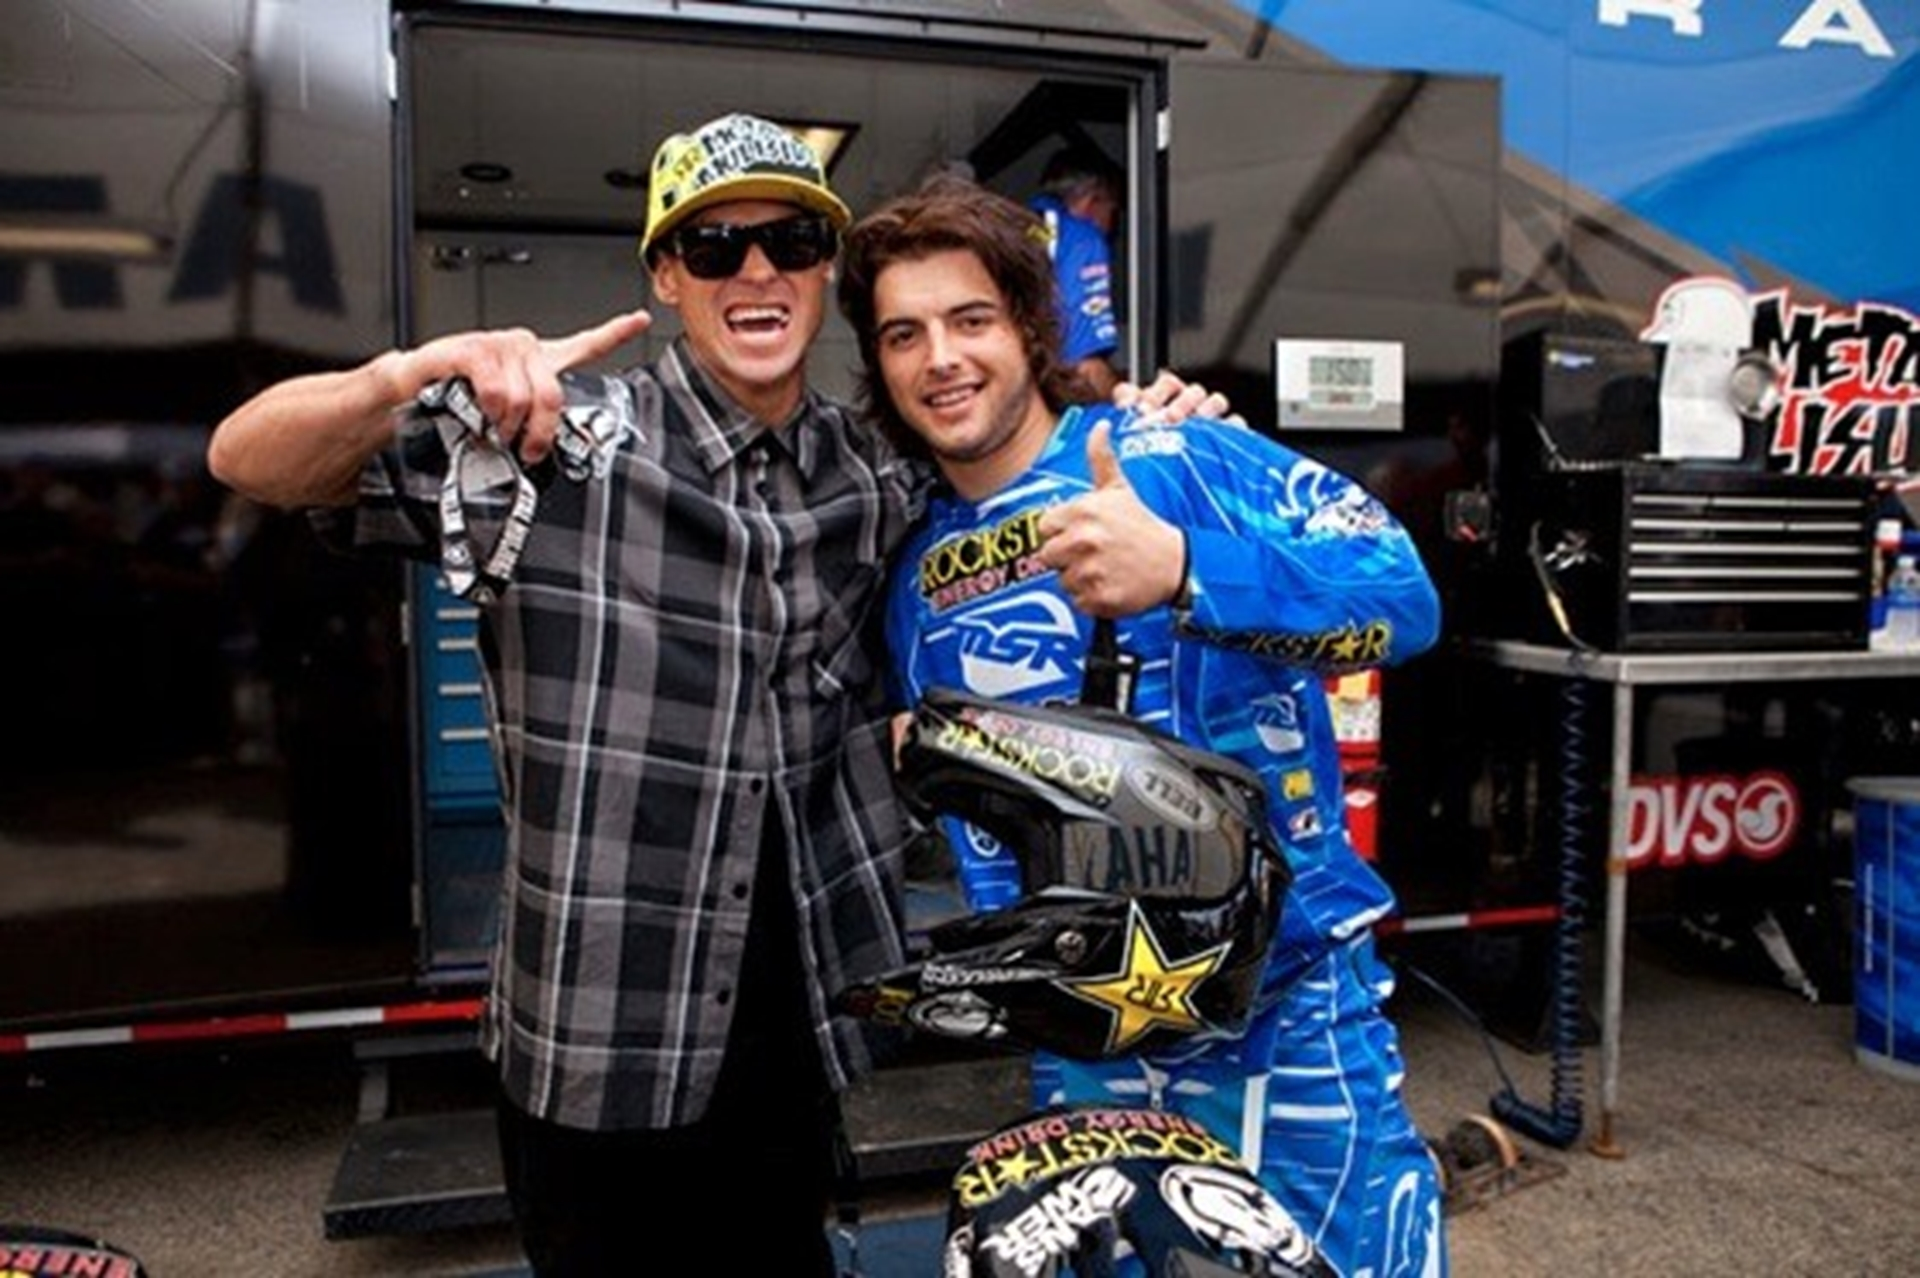 Deegan Izzi Supercross